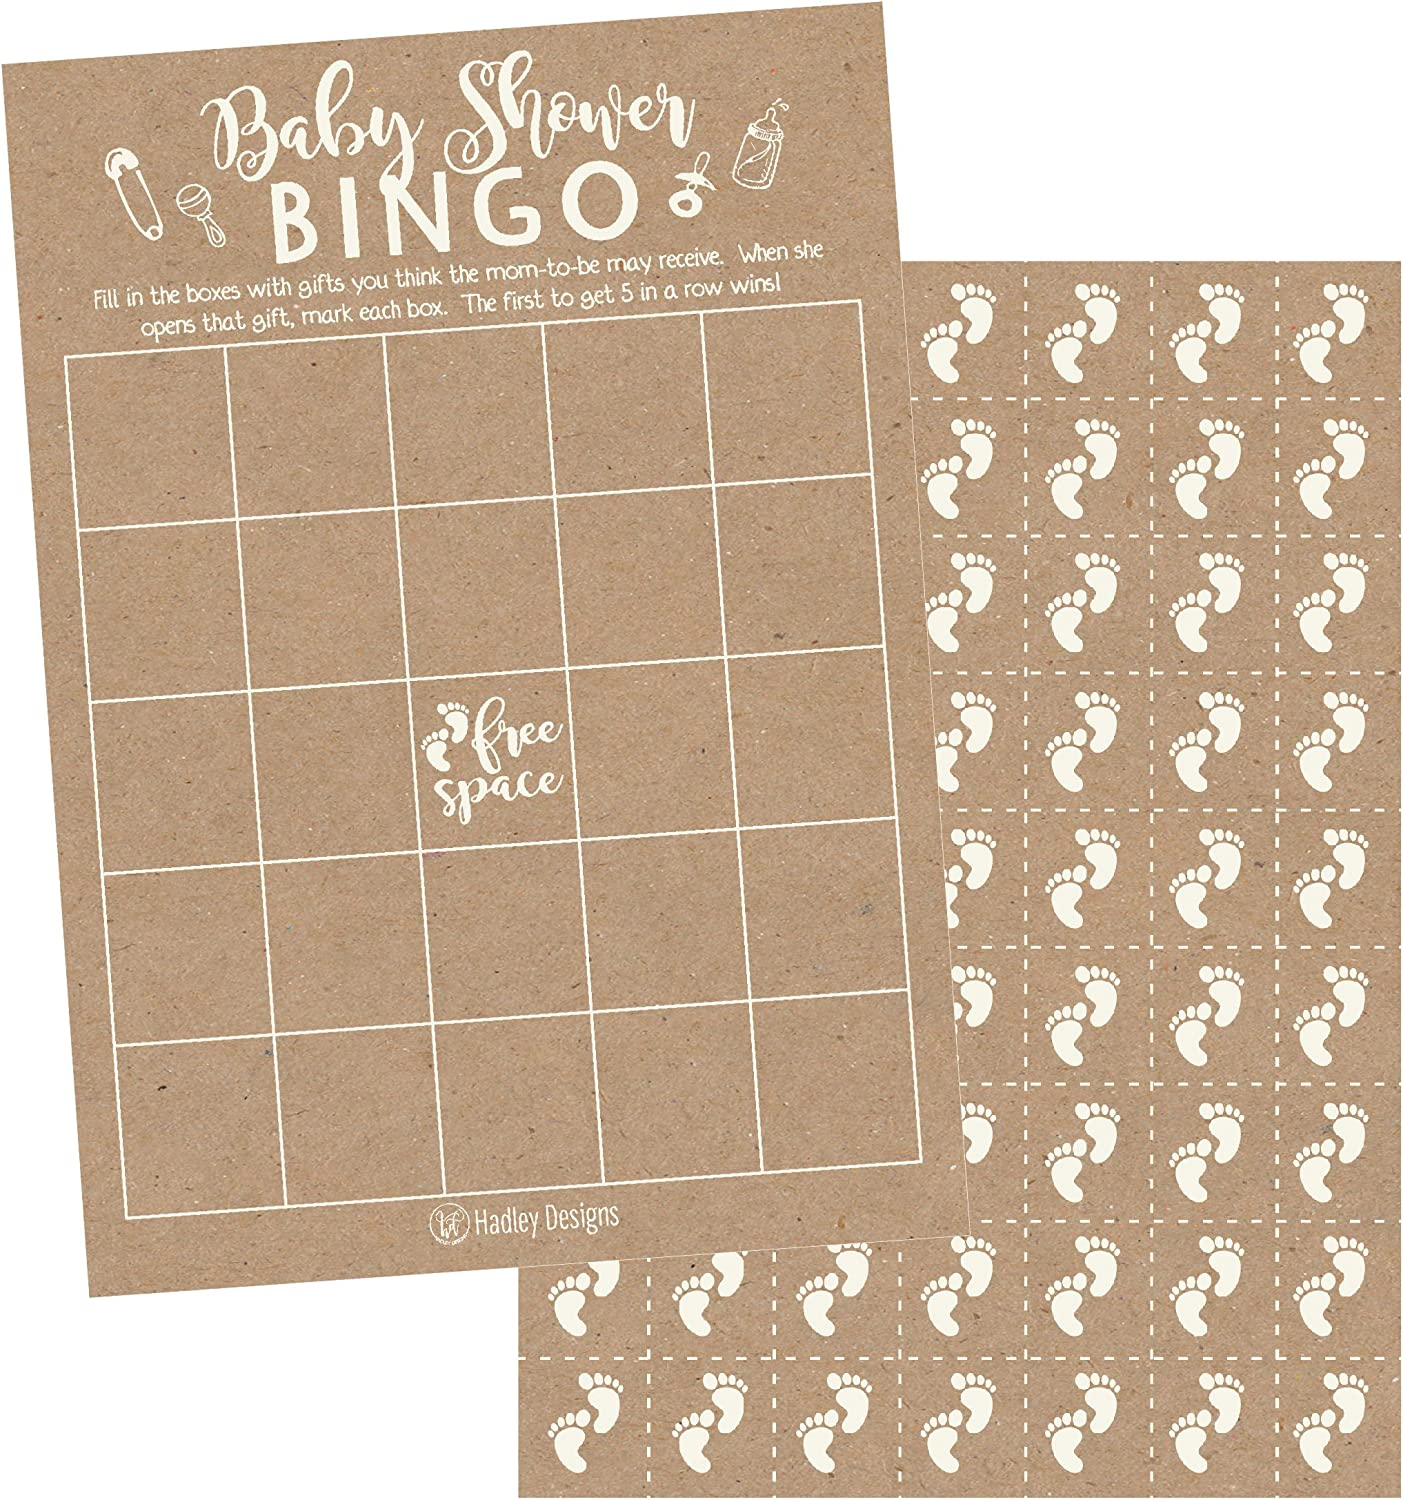 Cute Kids Woodland Paper Pattern PLUS 25 Pack of Baby Feet Game Chips Bulk Blank Bingo Squares Funny Baby Party Ideas and Supplies For Girl or Boy 25 Rustic Kraft Bingo Game Cards For Baby Shower